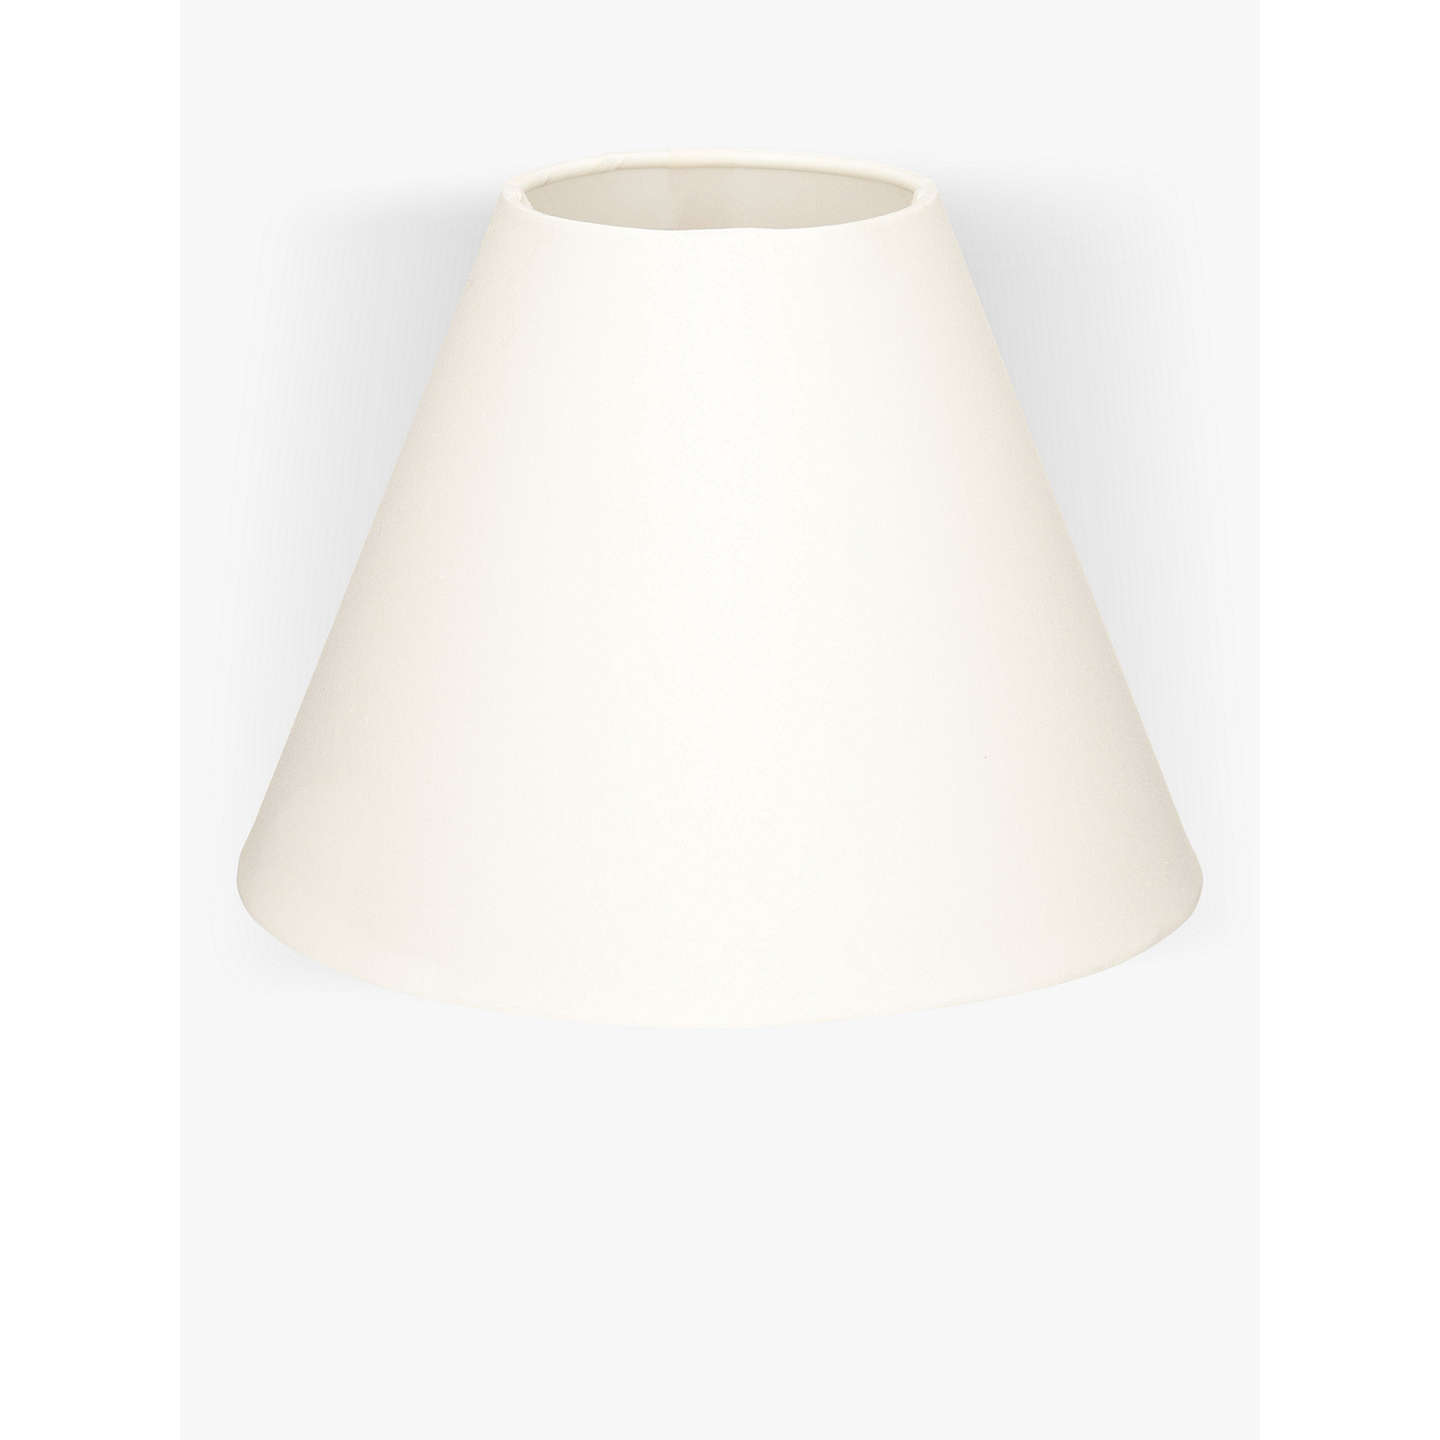 House by john lewis lulu cone lampshade at john lewis buyhouse by john lewis lulu cone lampshade cream dia25cm online at johnlewis aloadofball Gallery